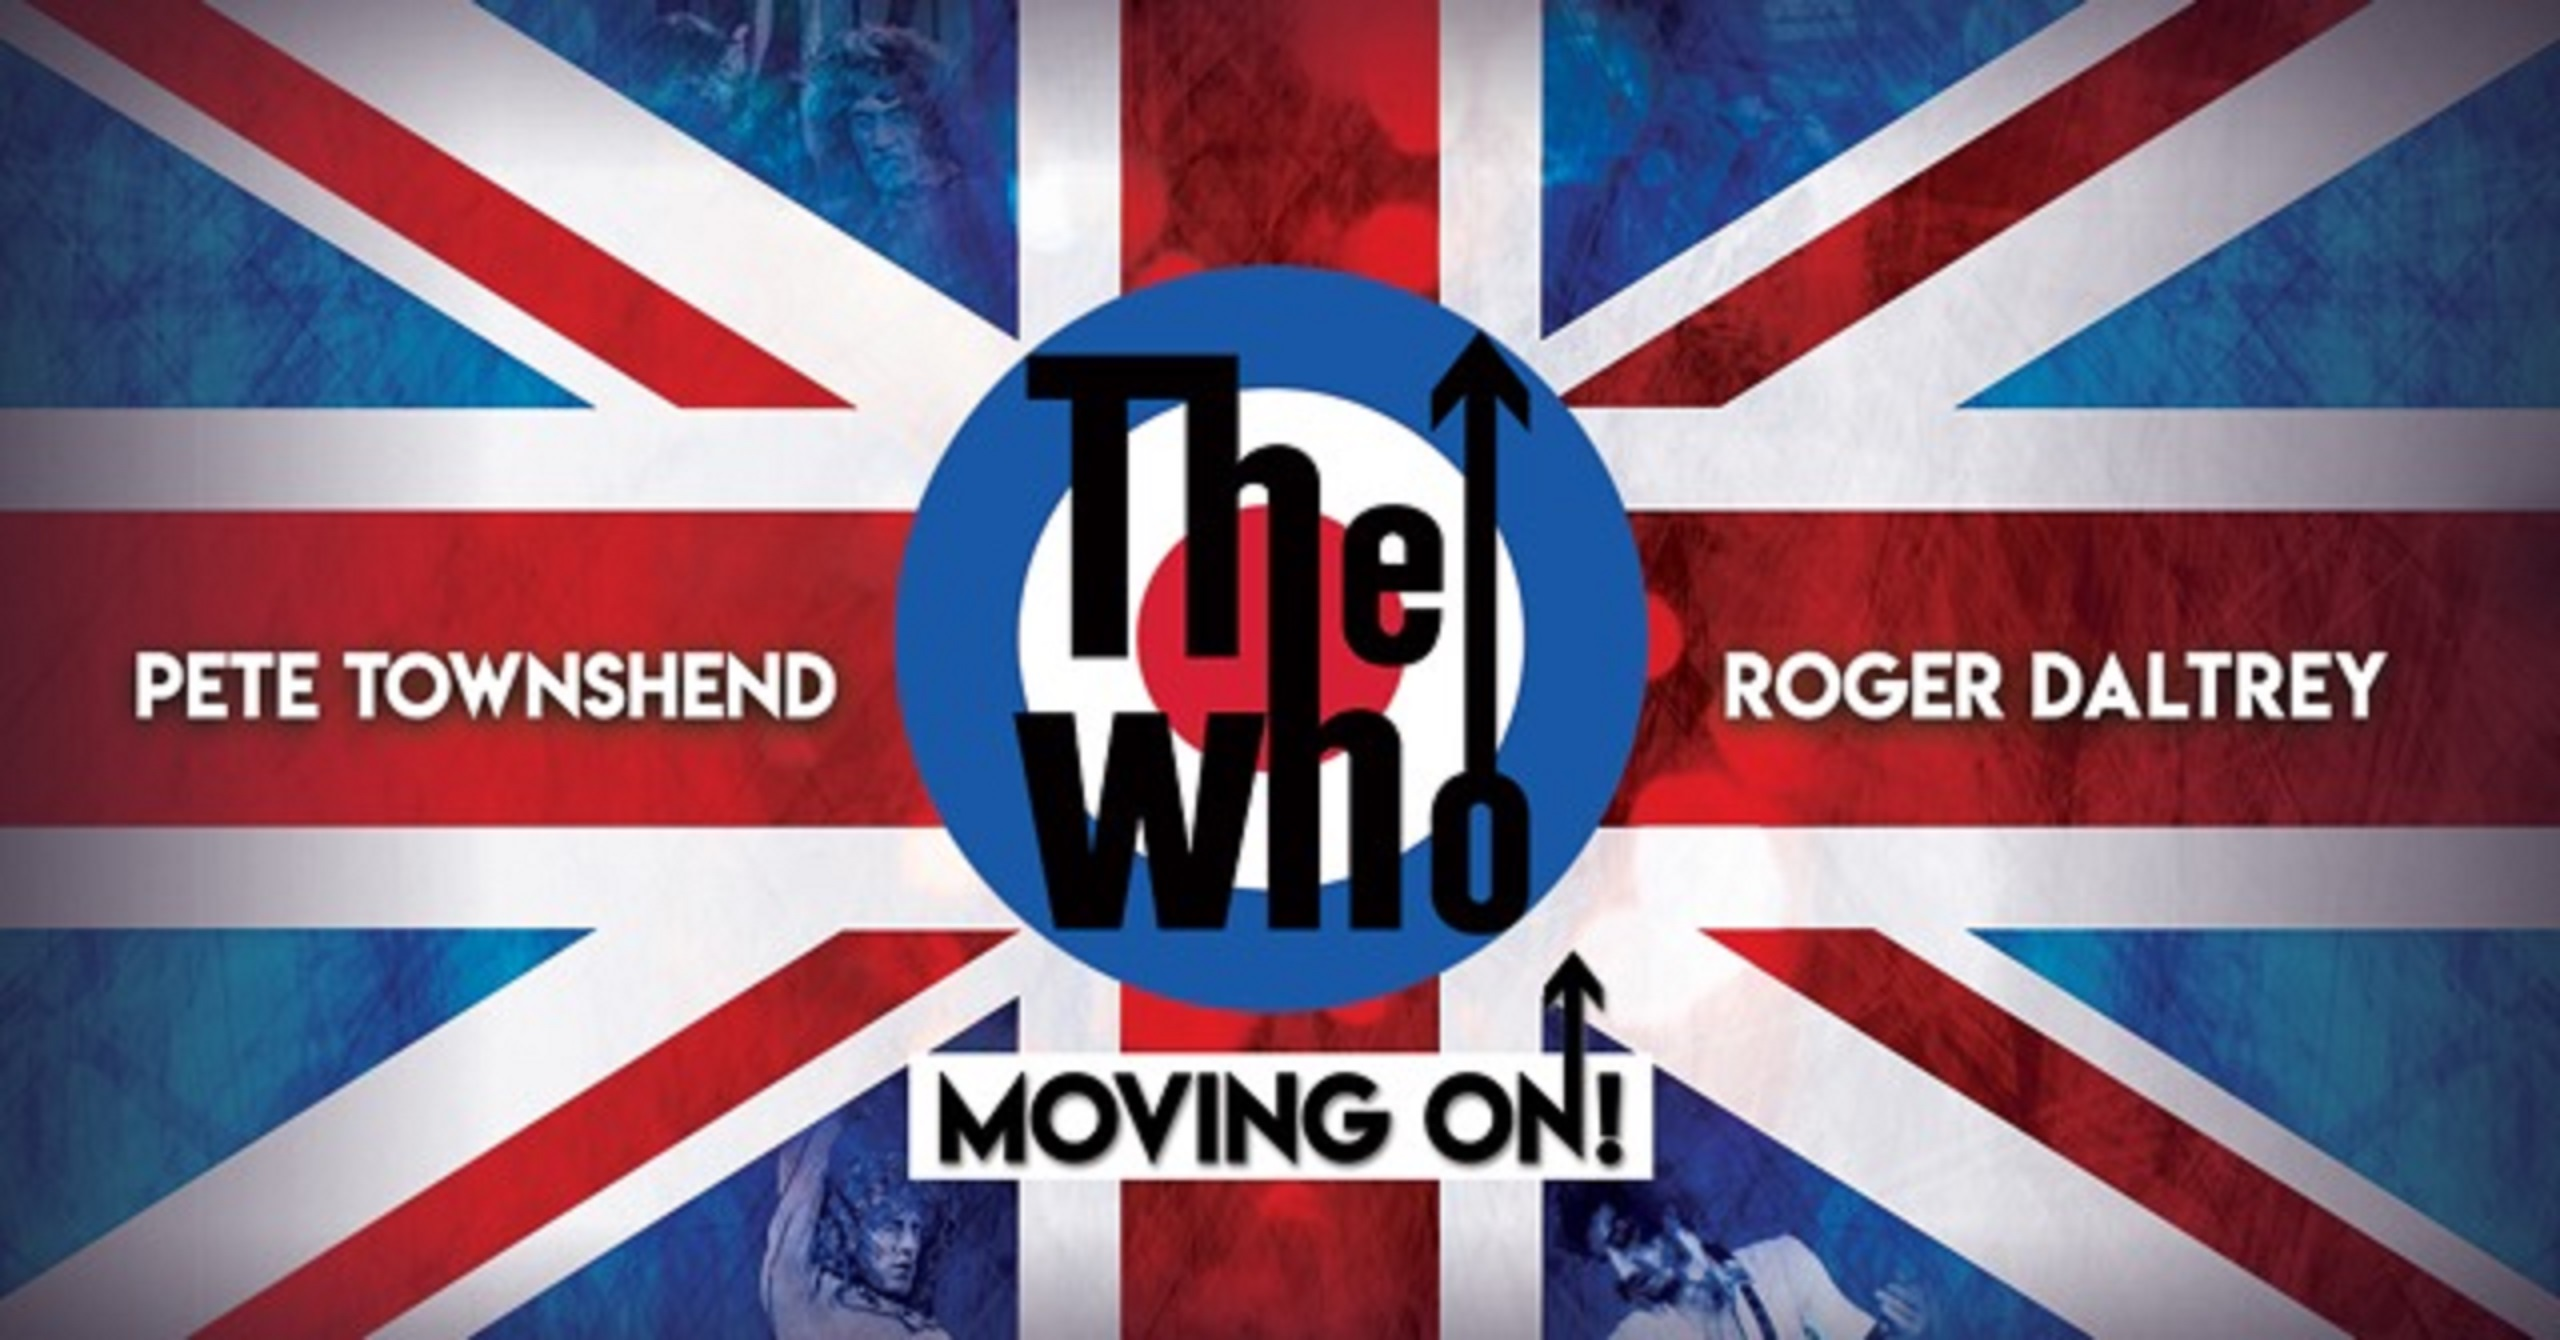 THE WHO announces 2019 MOVING ON! TOUR